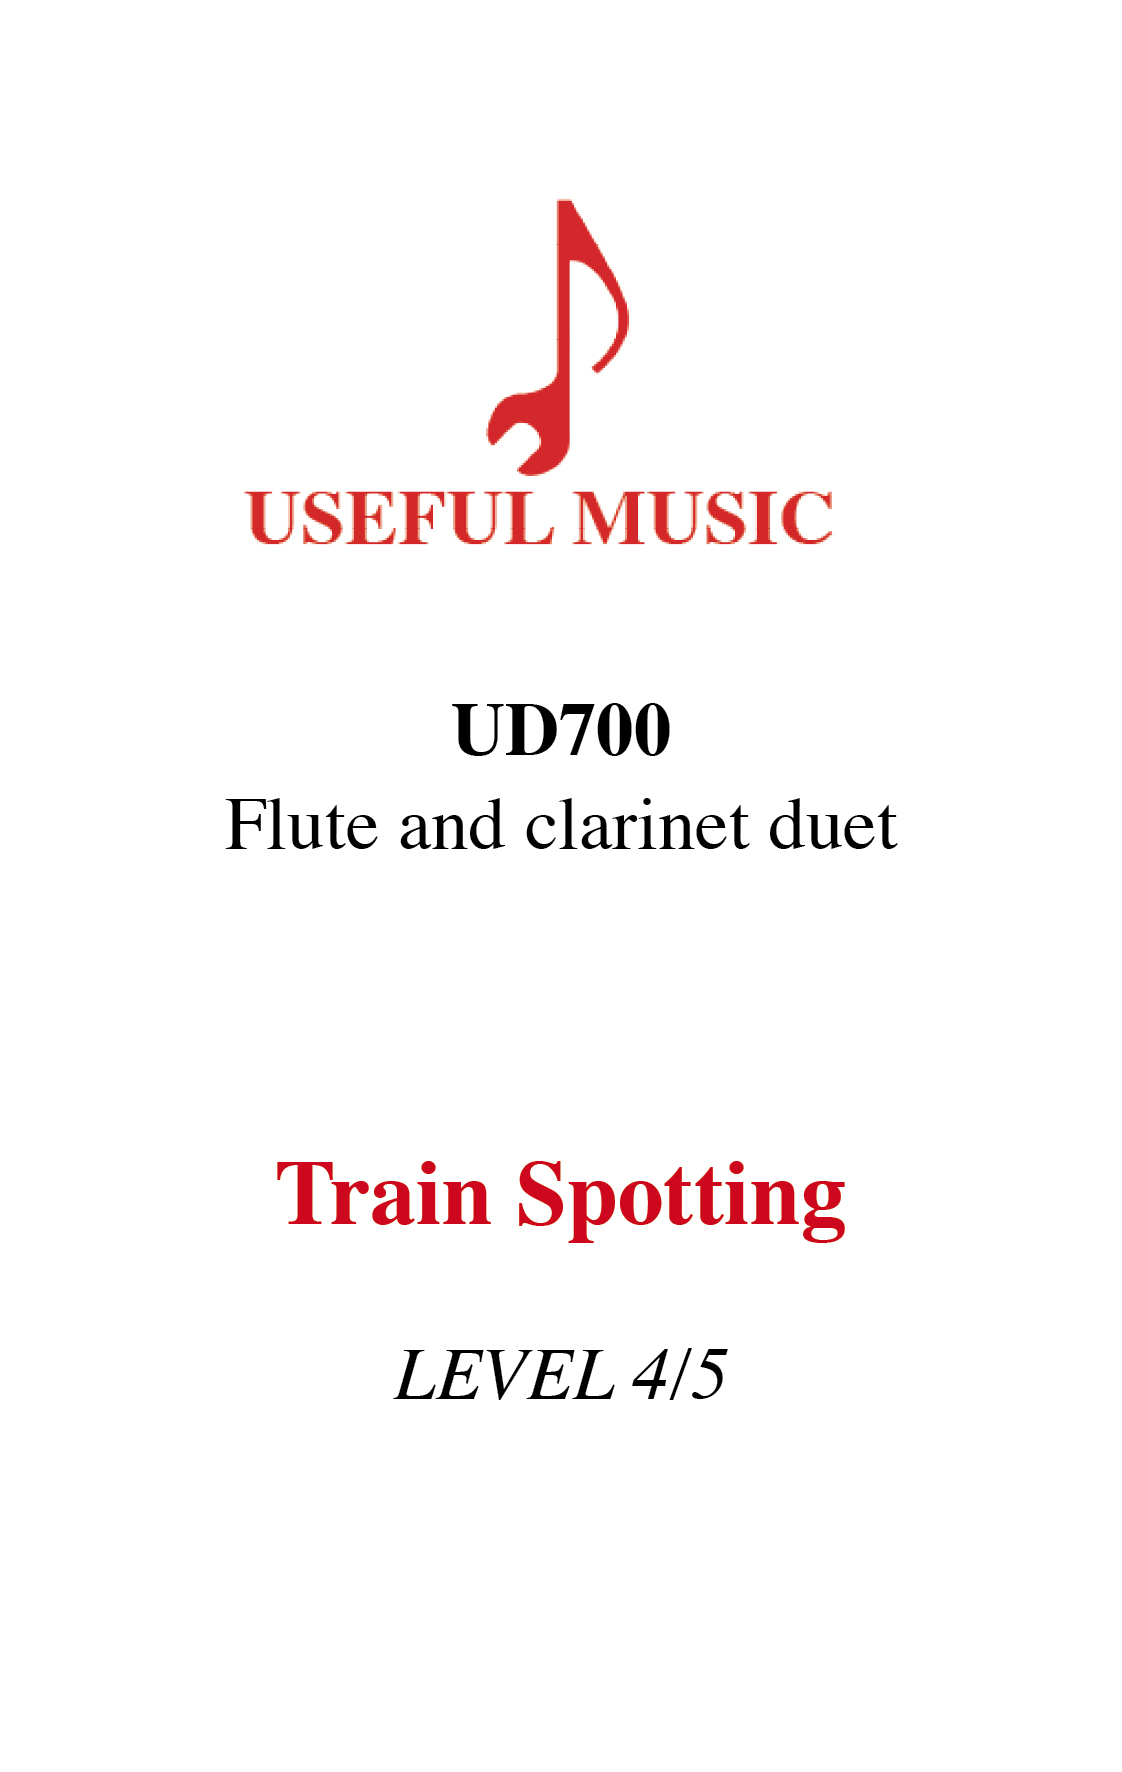 Train Spotting - flute and clarinet duet